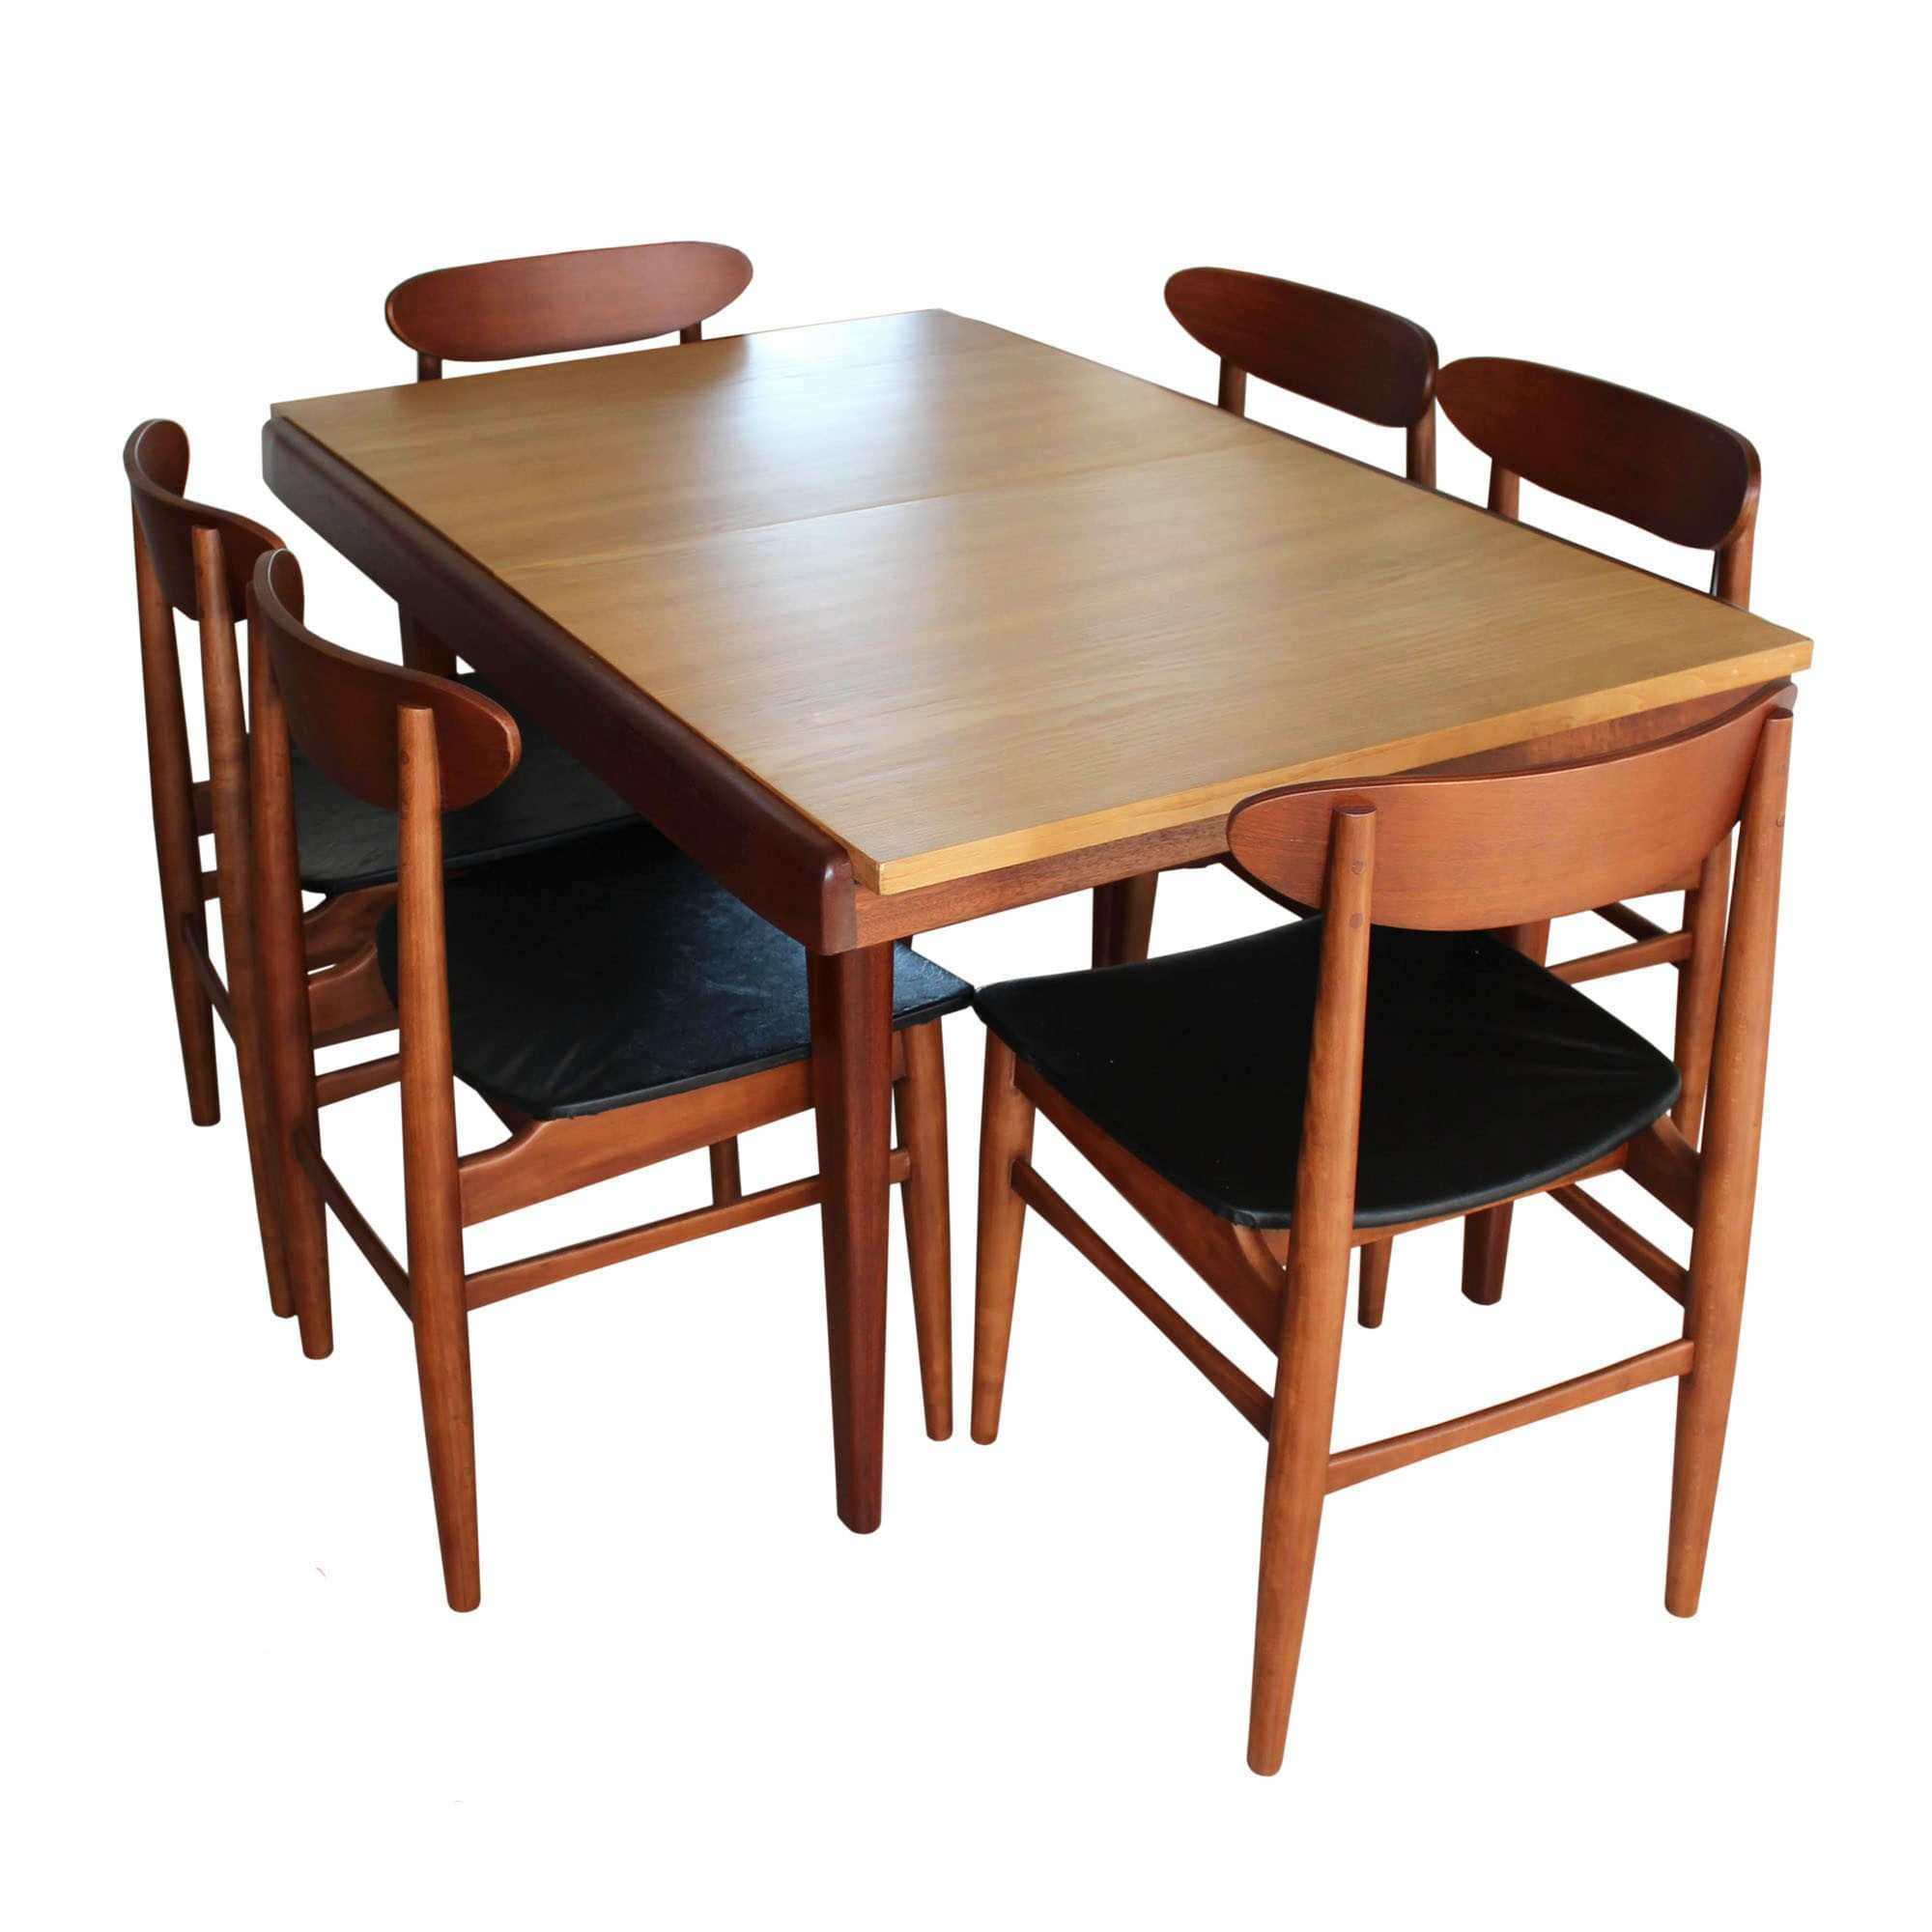 Chair Contemporary Mid Century Od Teak Dining Chairs by Erik Buch